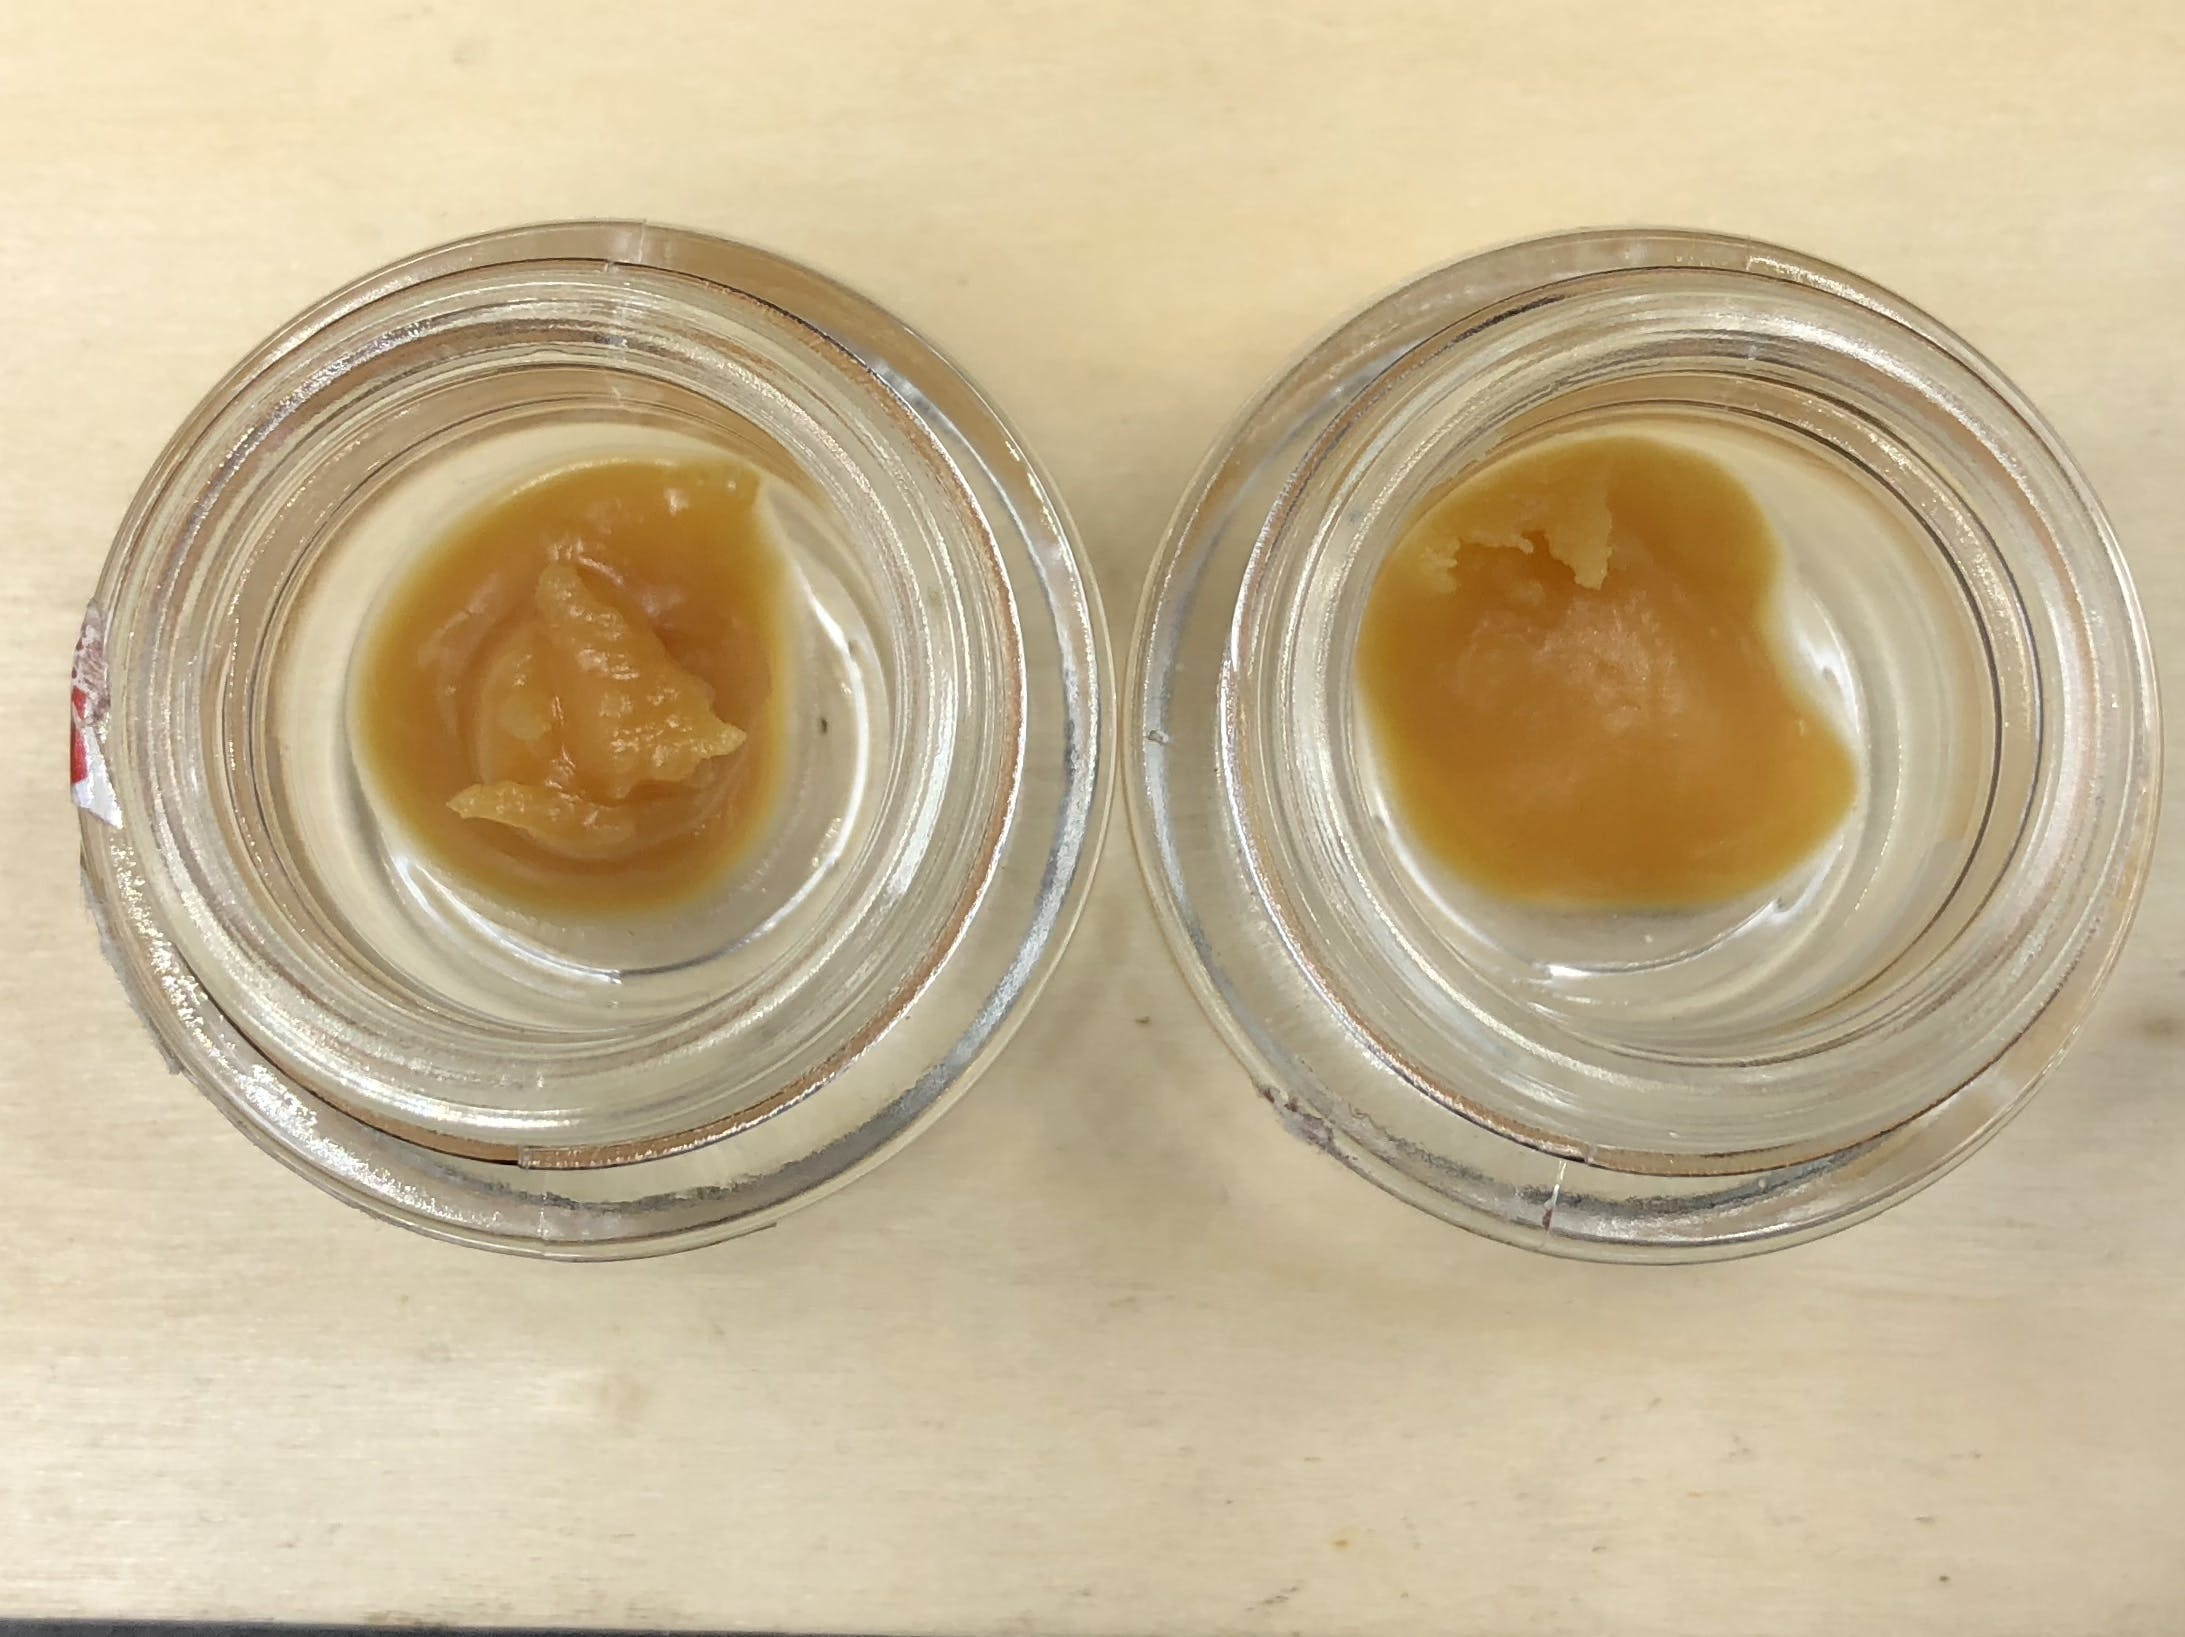 concentrate-710-labs-live-resin-badder